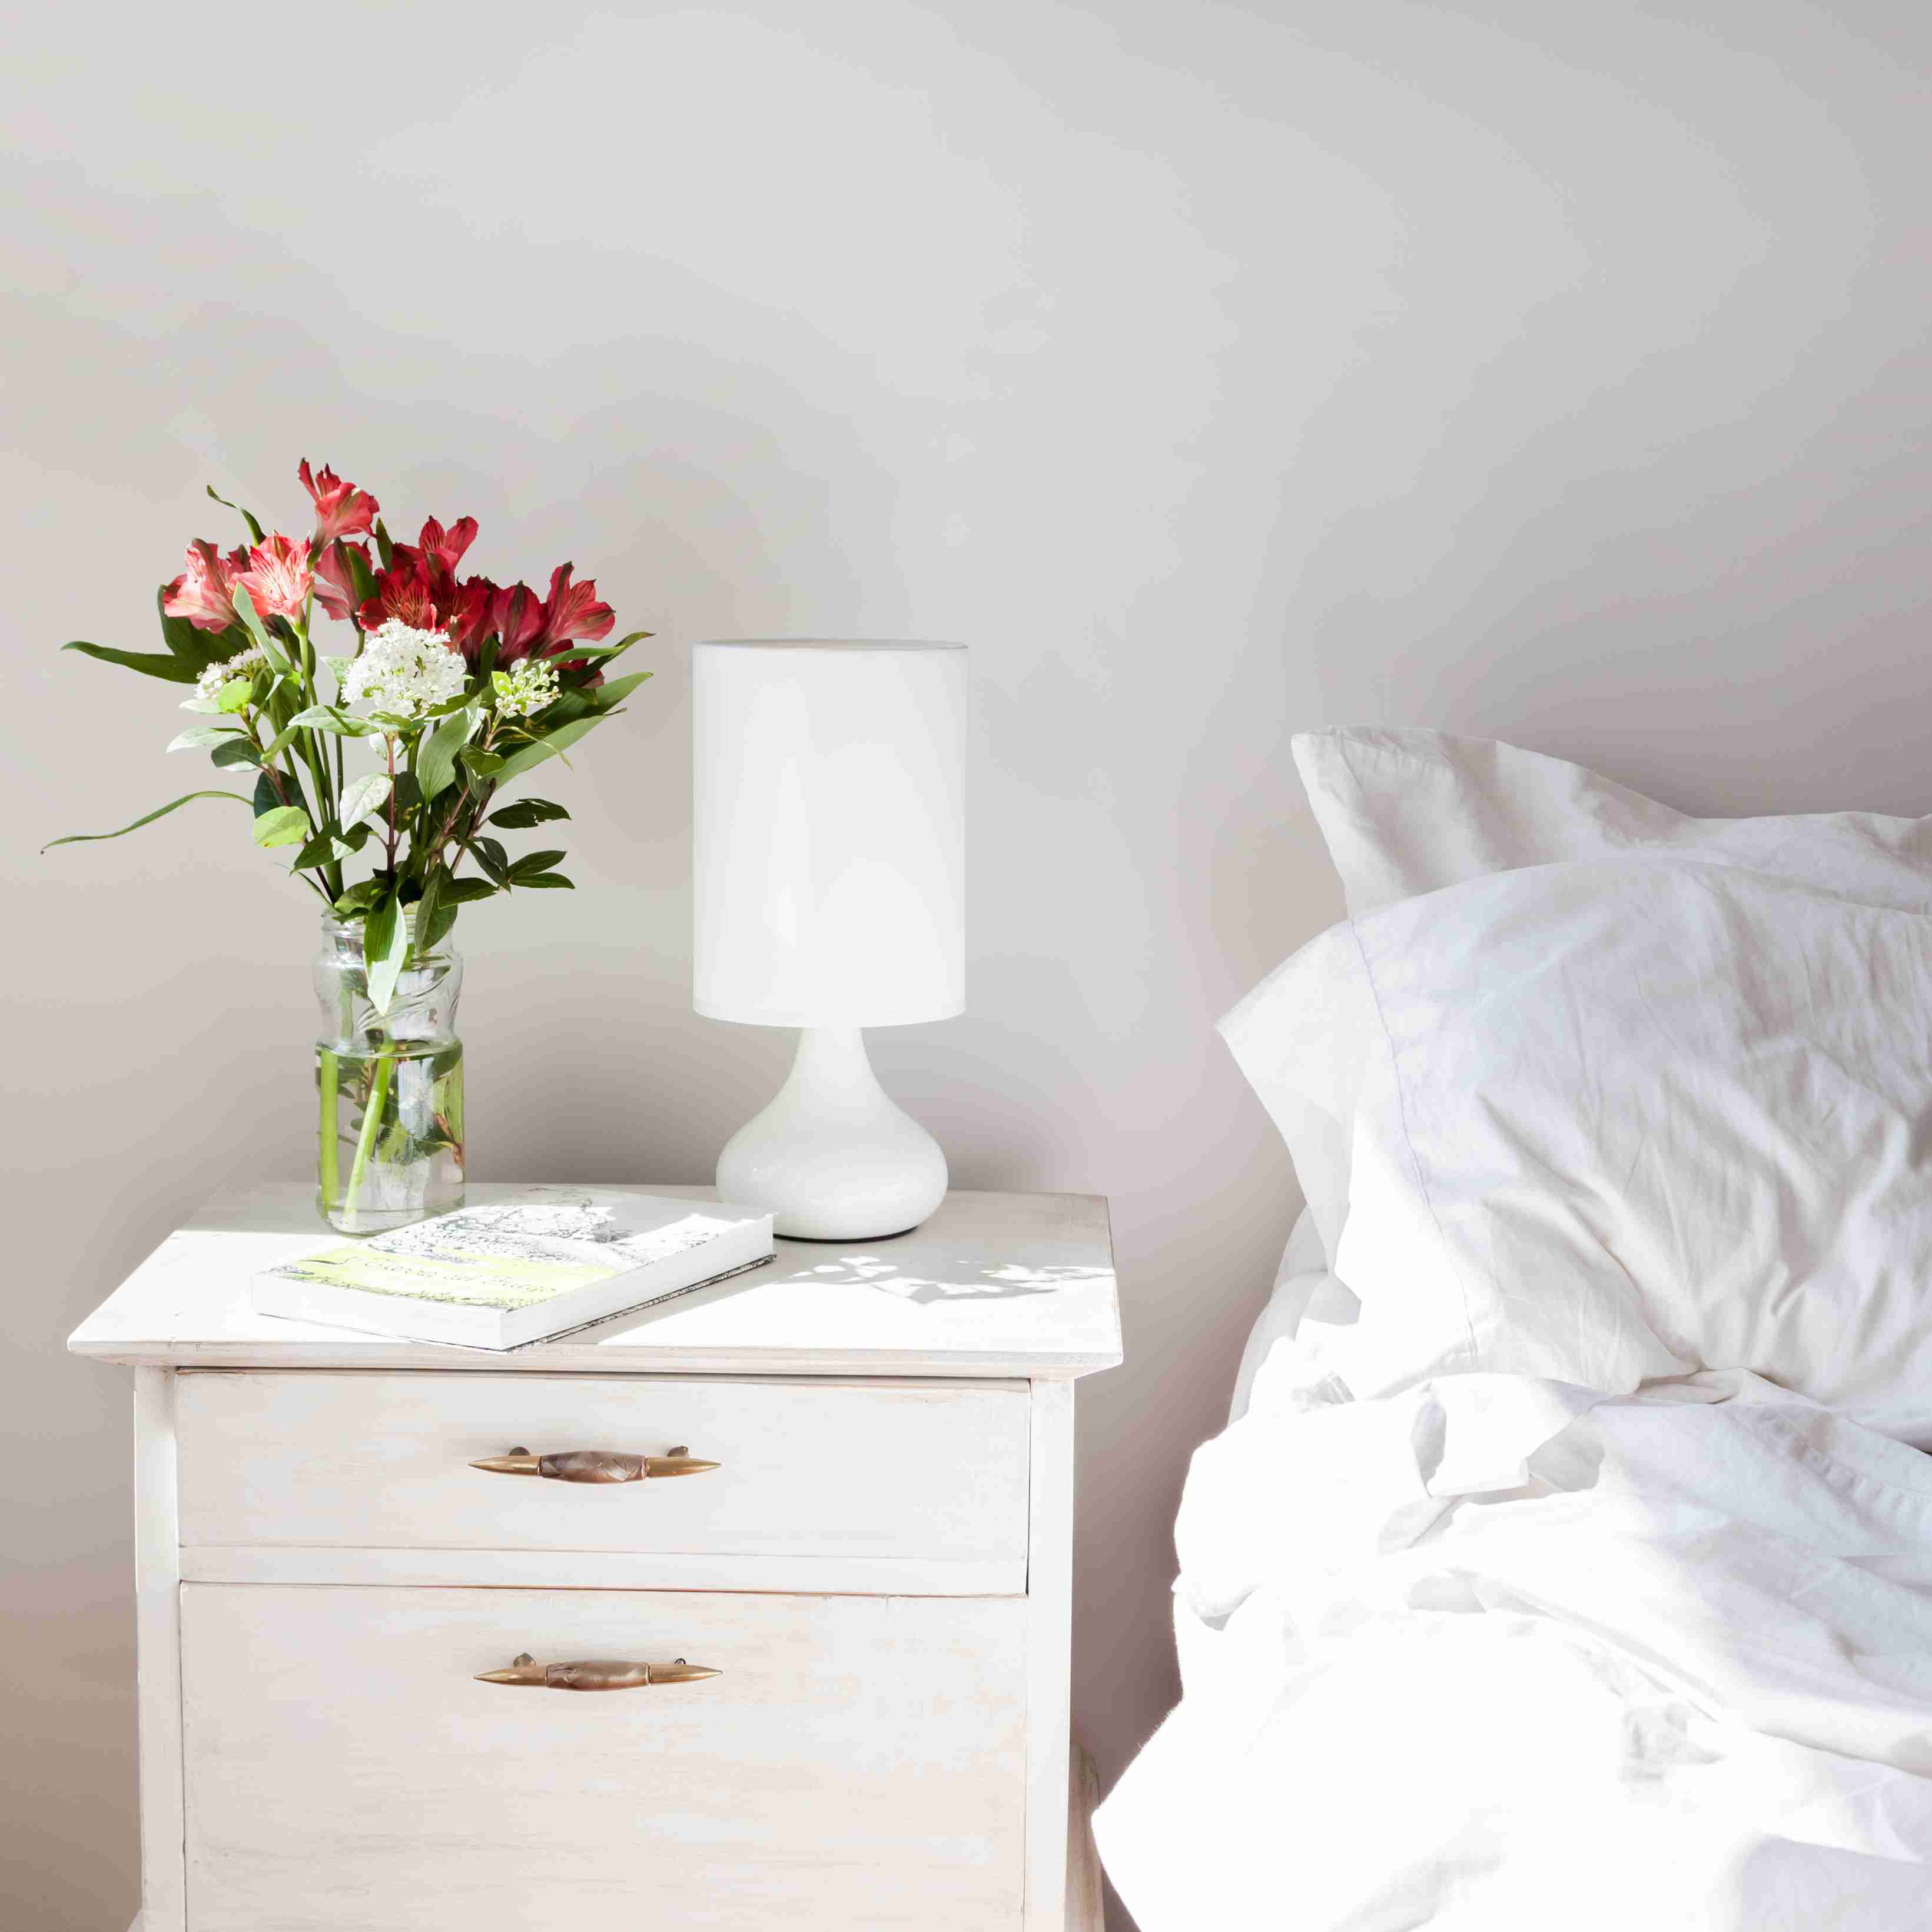 white bedroom with flowers on the bedside table